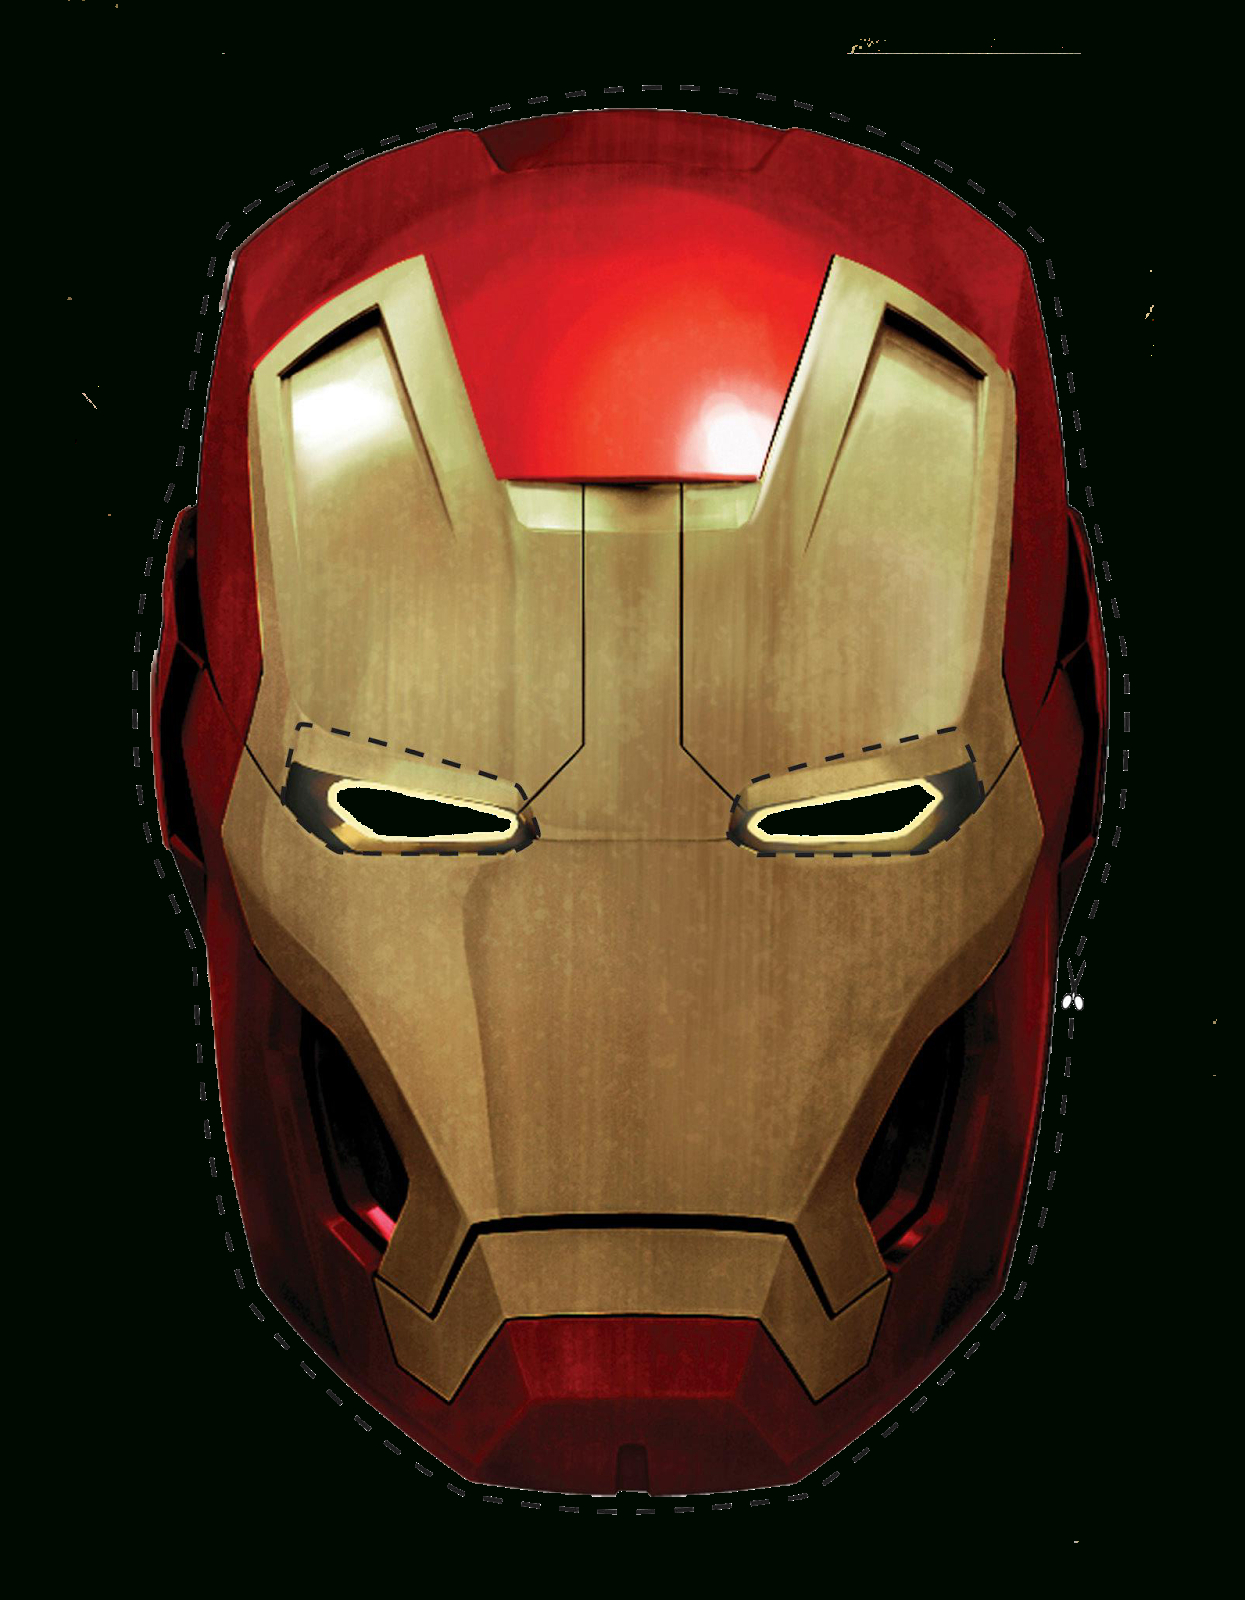 Free Printable Iron Man Mask. - Oh My Fiesta! For Geeks - Free Printable Ironman Mask